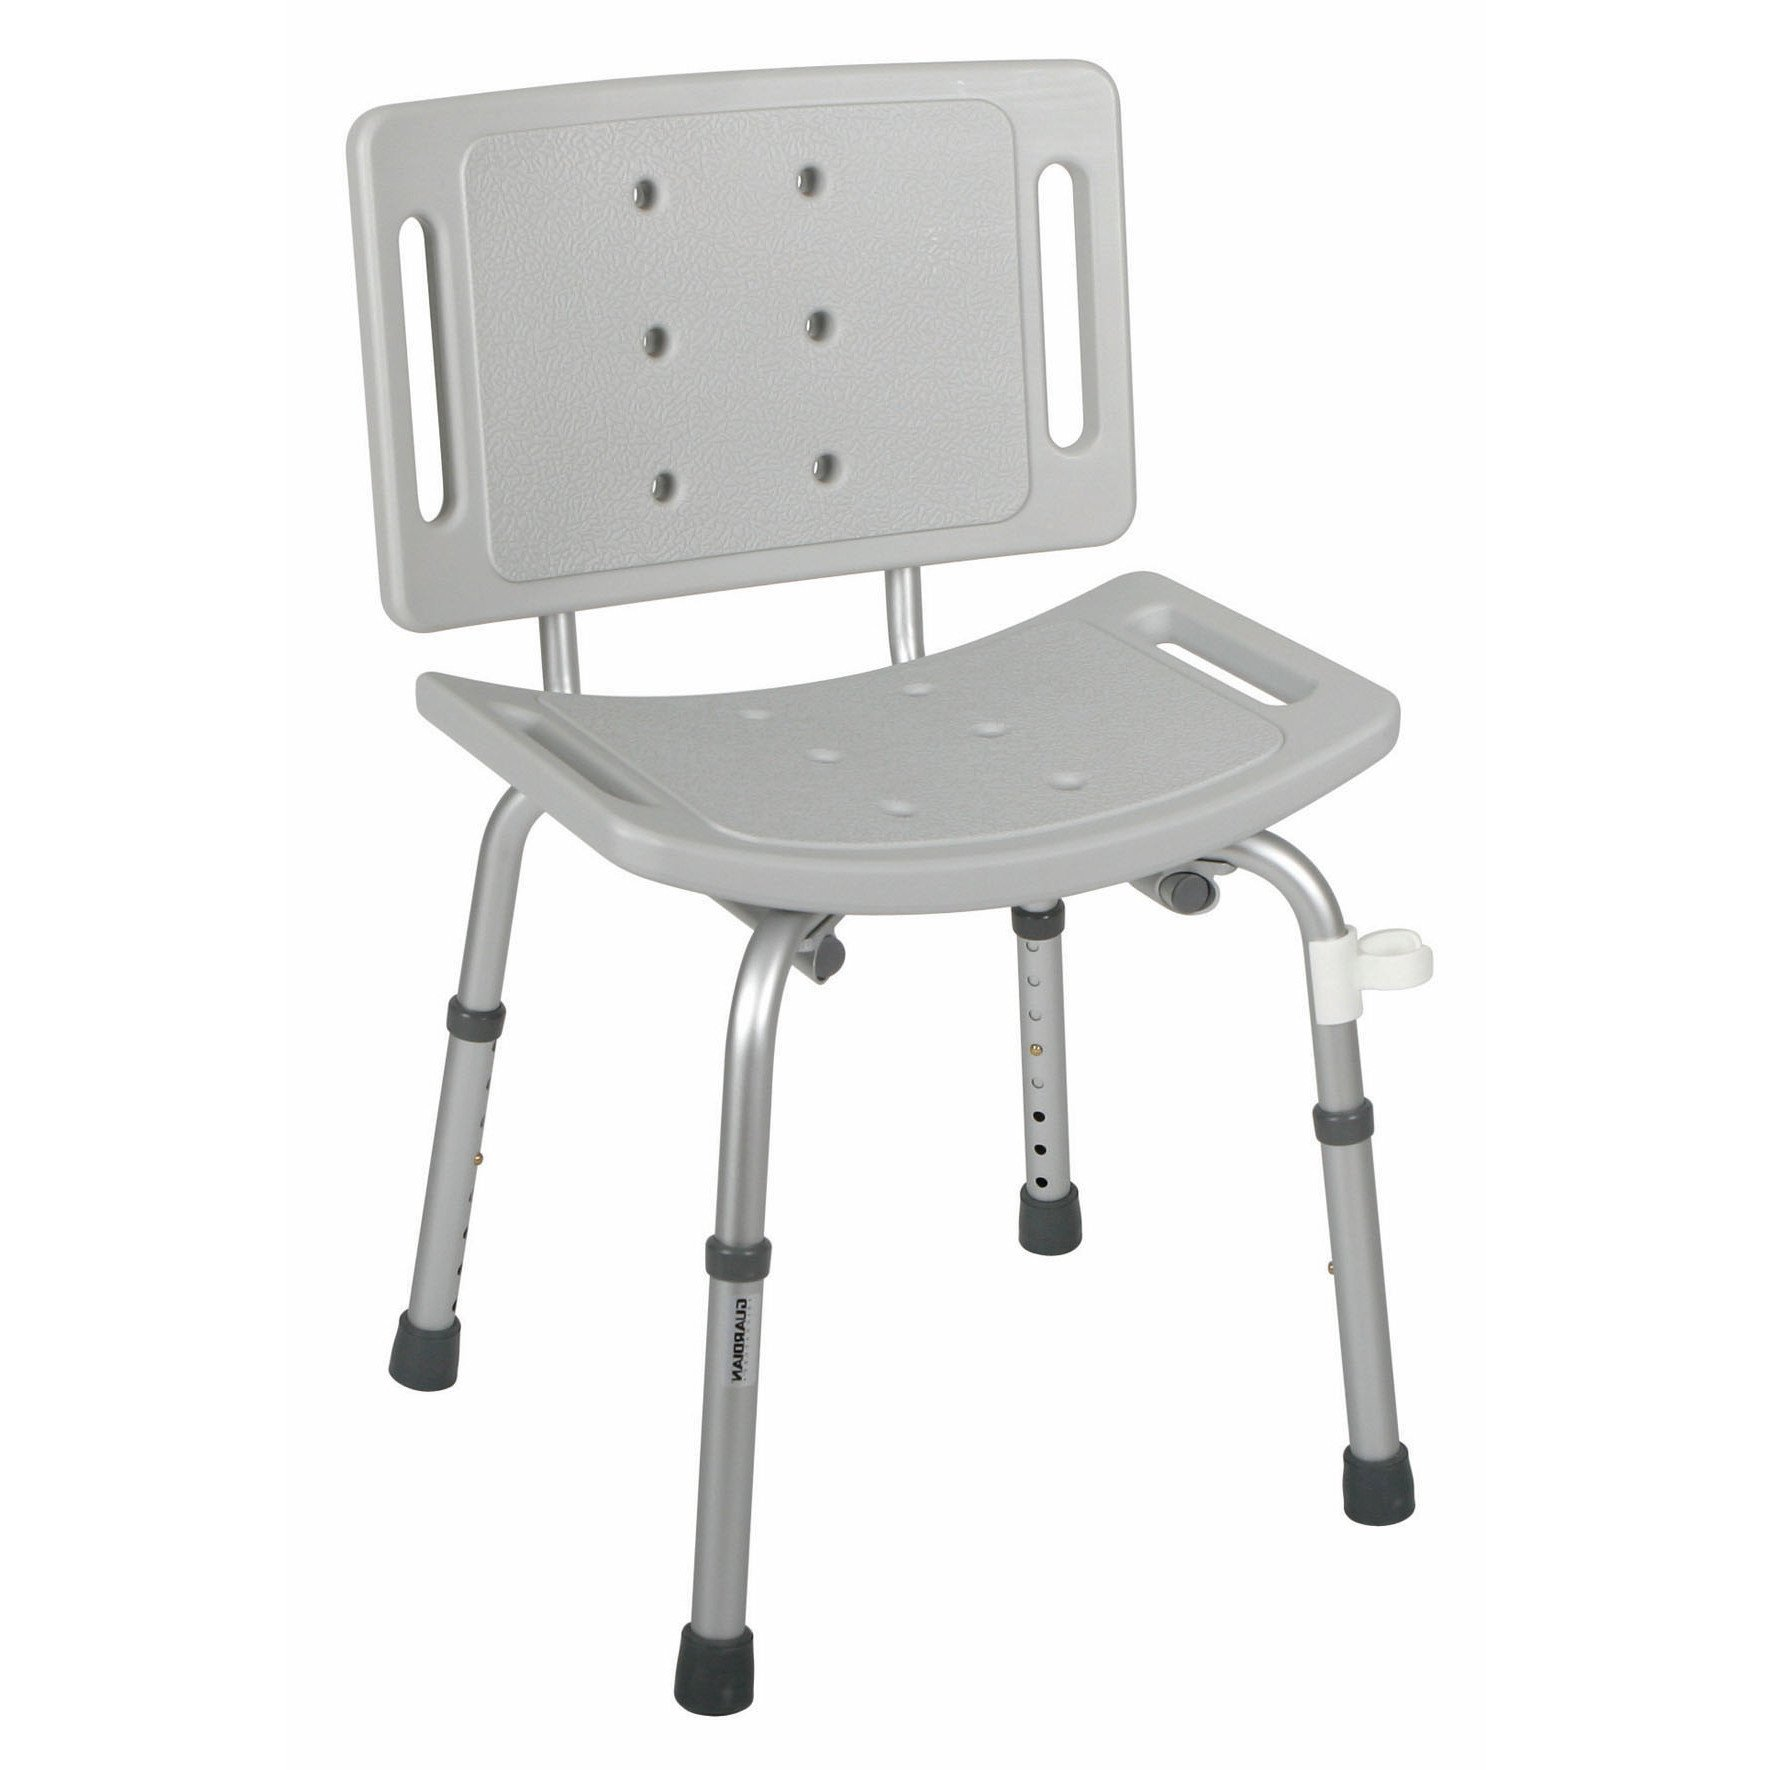 invacare chair shower i with back fit